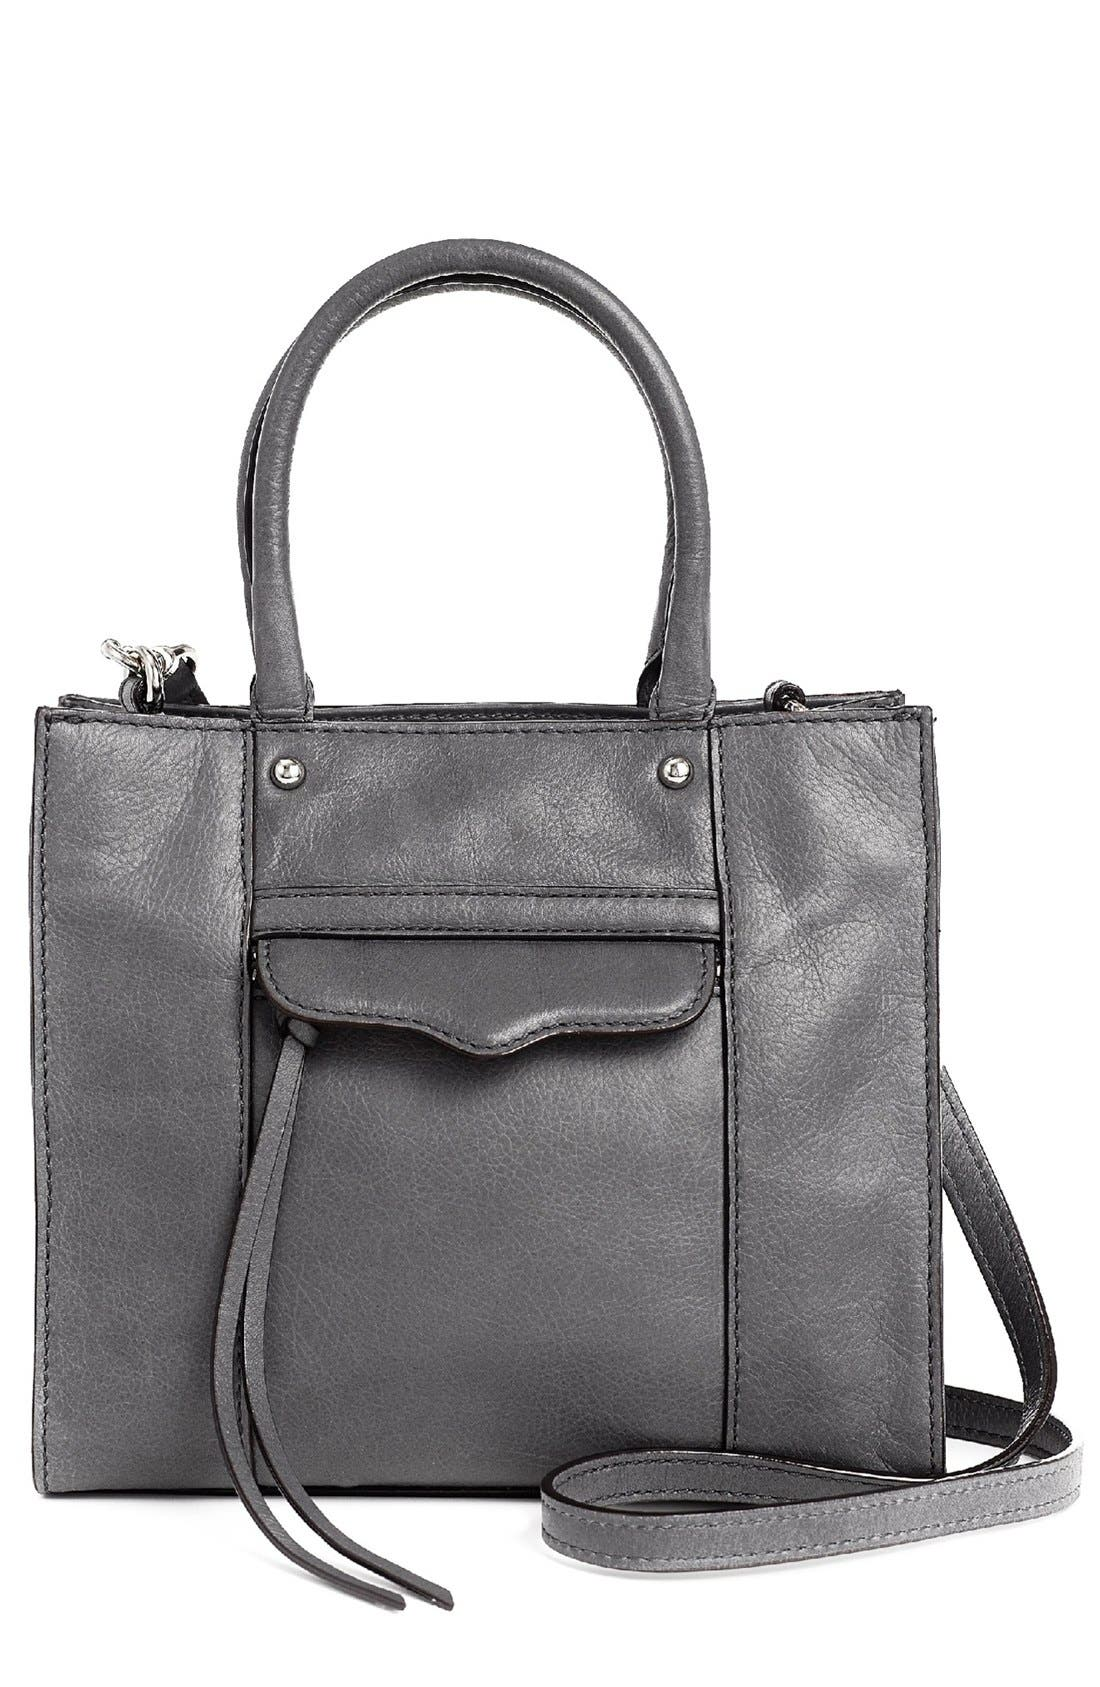 Alternate Image 1 Selected - Rebecca Minkoff 'MAB Mini' Leather Tote